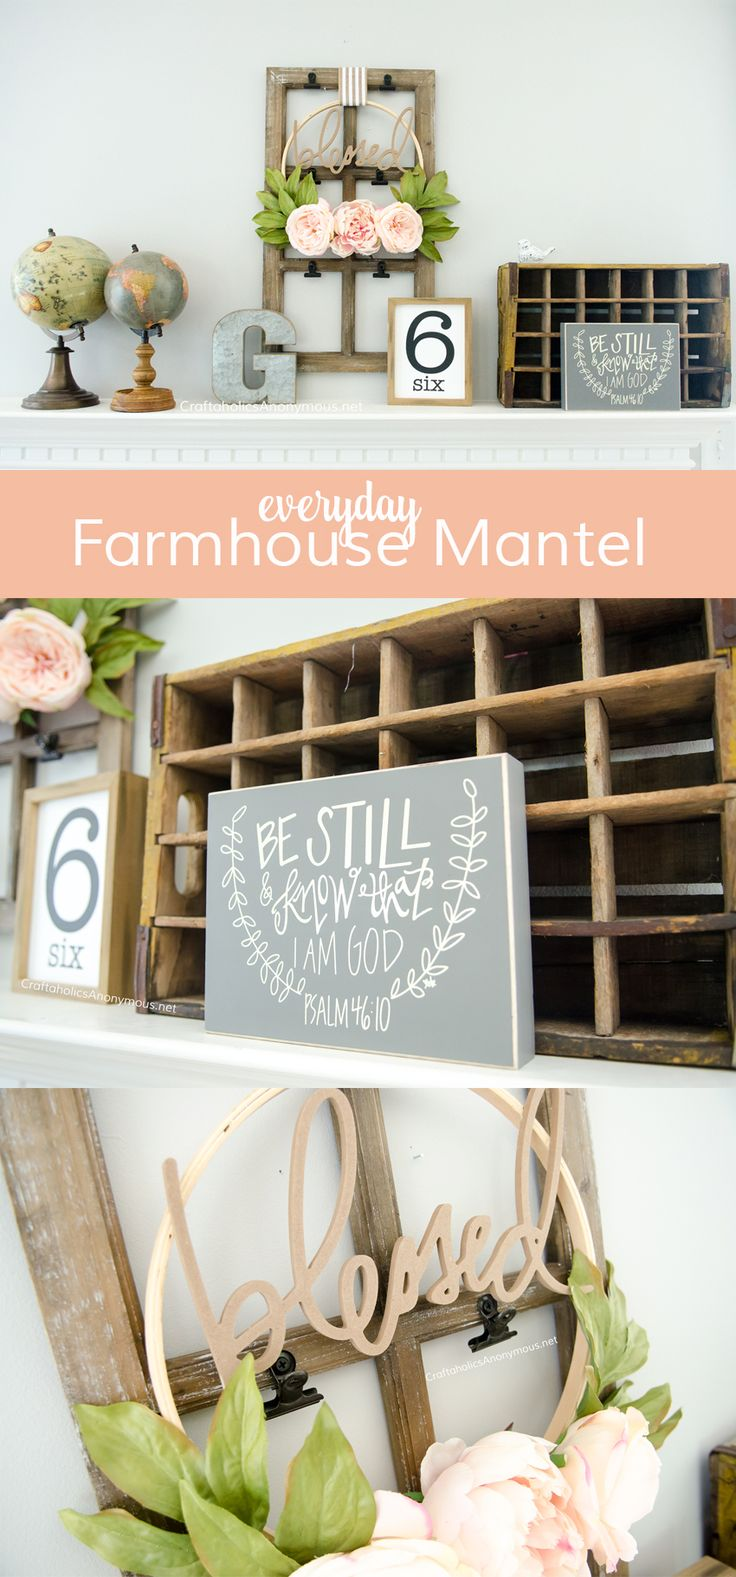 DIY Farmhouse mantel decor :: Perfect for every day home decor idea